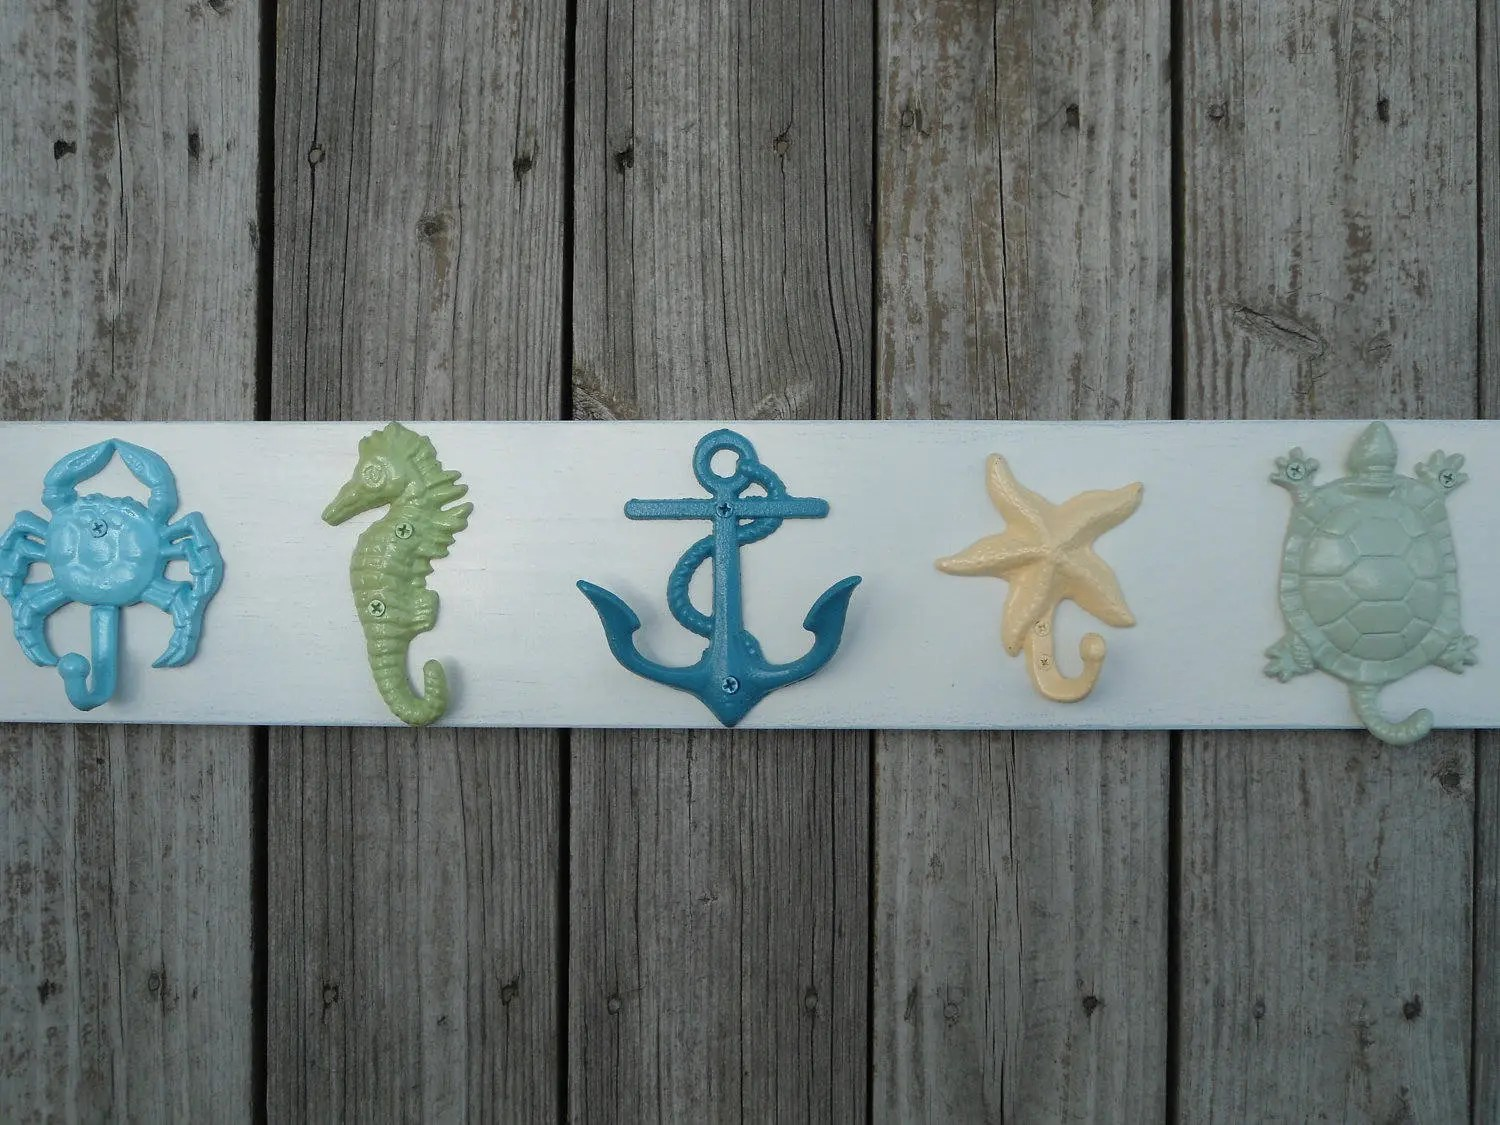 Magnificent Nautical Beach Decor Towel Rack Bathroom Towel Hooks Outdoor Shower Lakehouse Beach Home Lake Cottage Unmounted Wall Hooks Nautical Beach Decor Towel Rack Bathroom Towel Hooks Outdoor Show houzz-03 Bathroom Towel Hooks